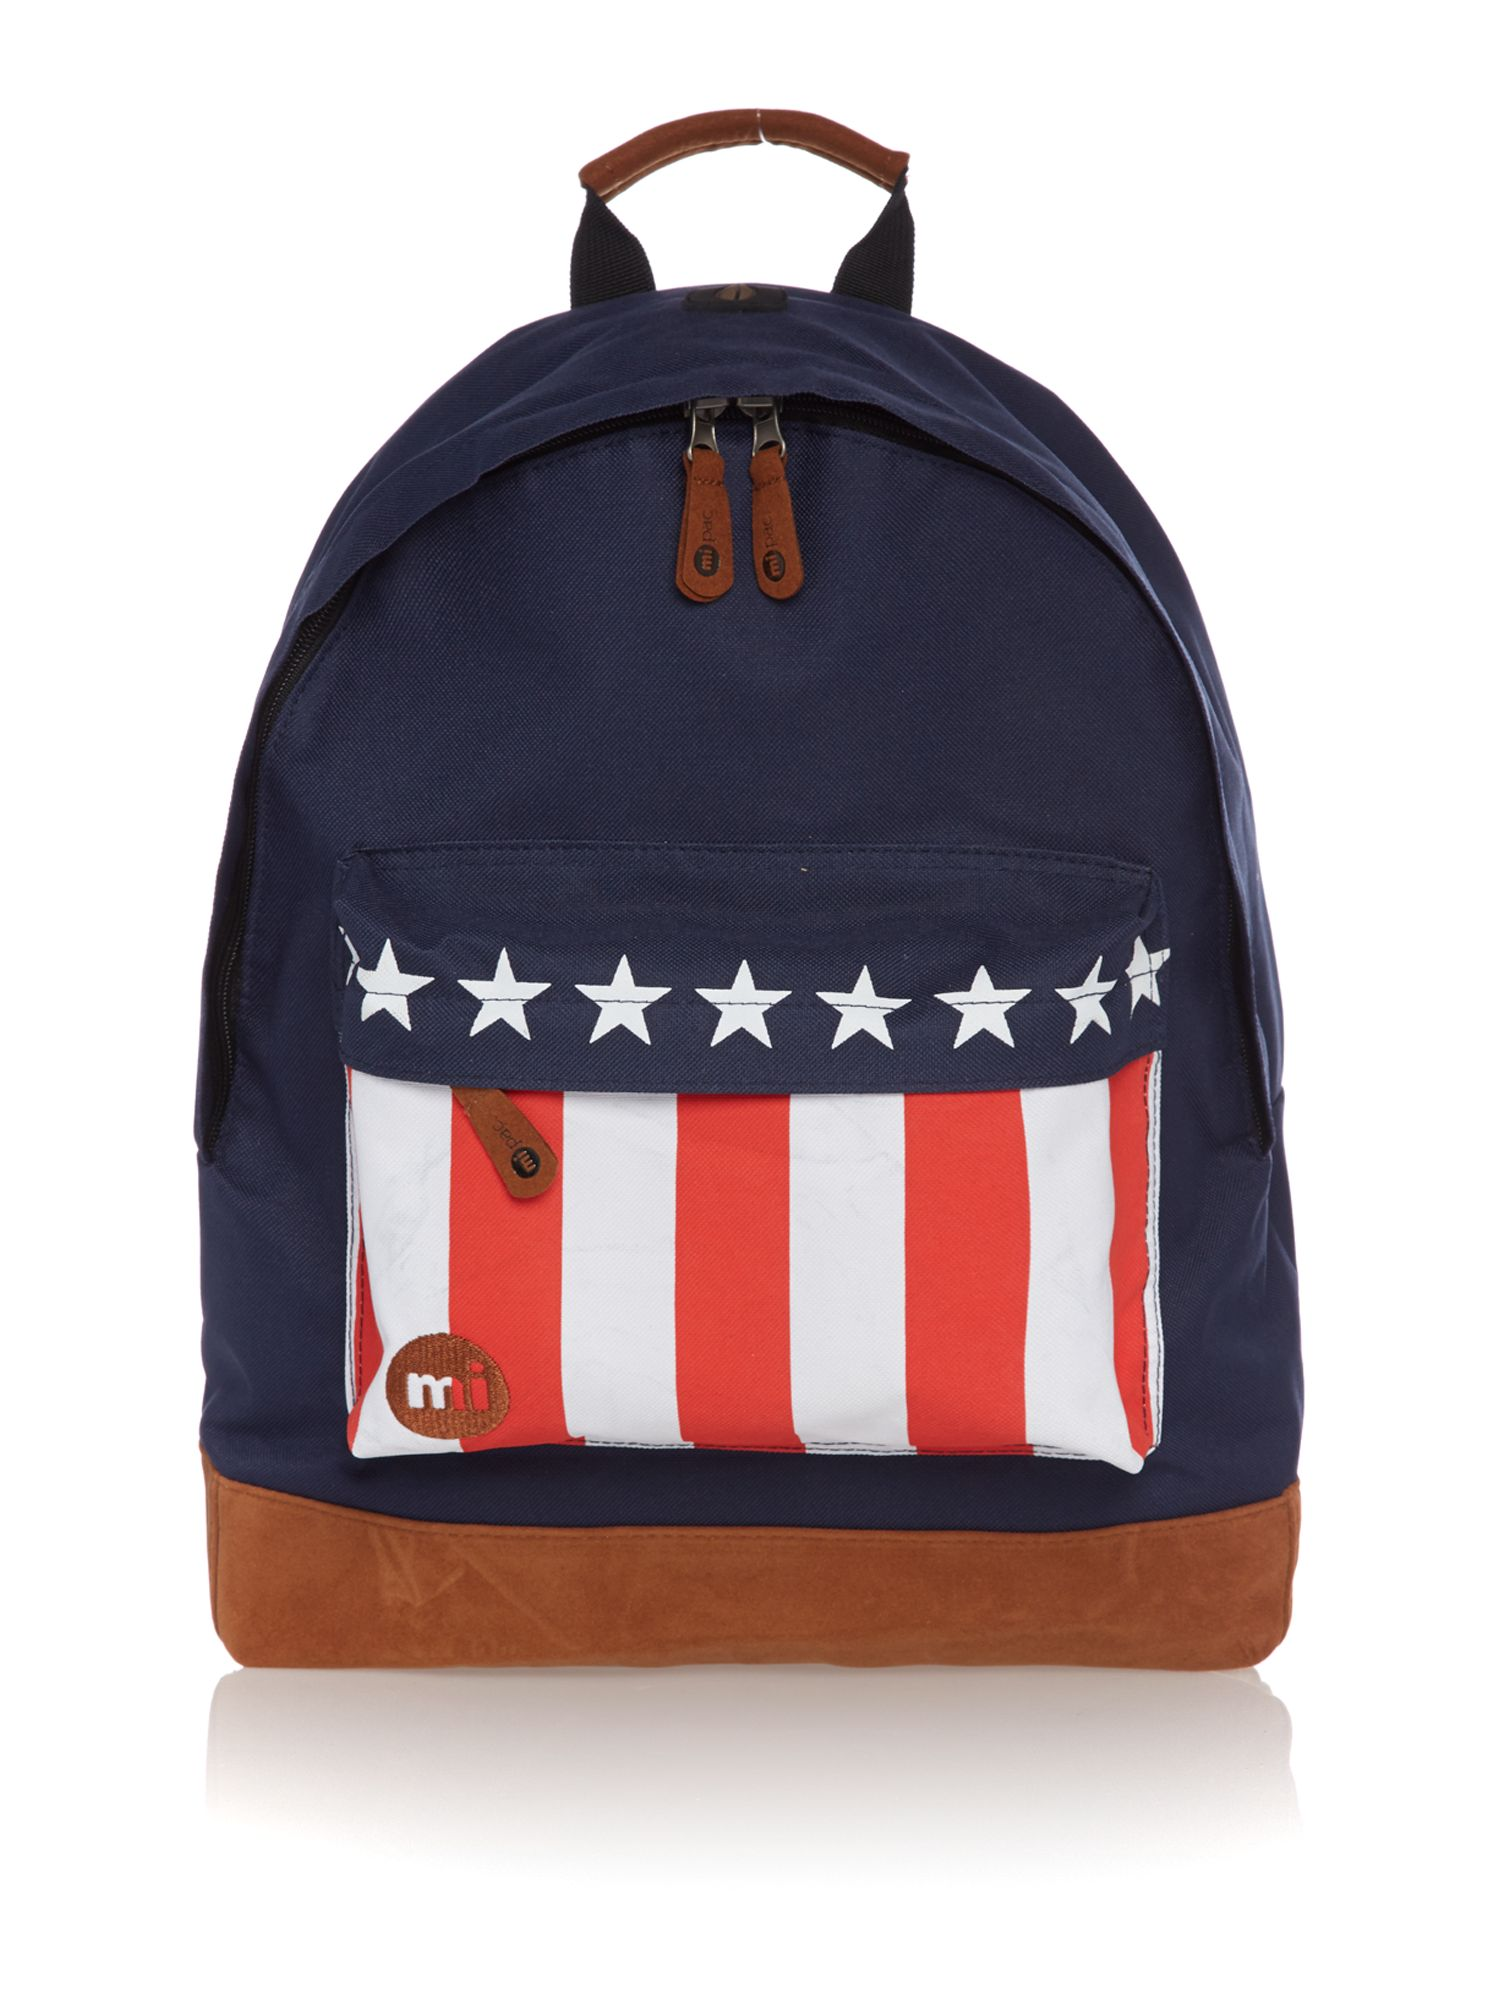 USA flag backpack